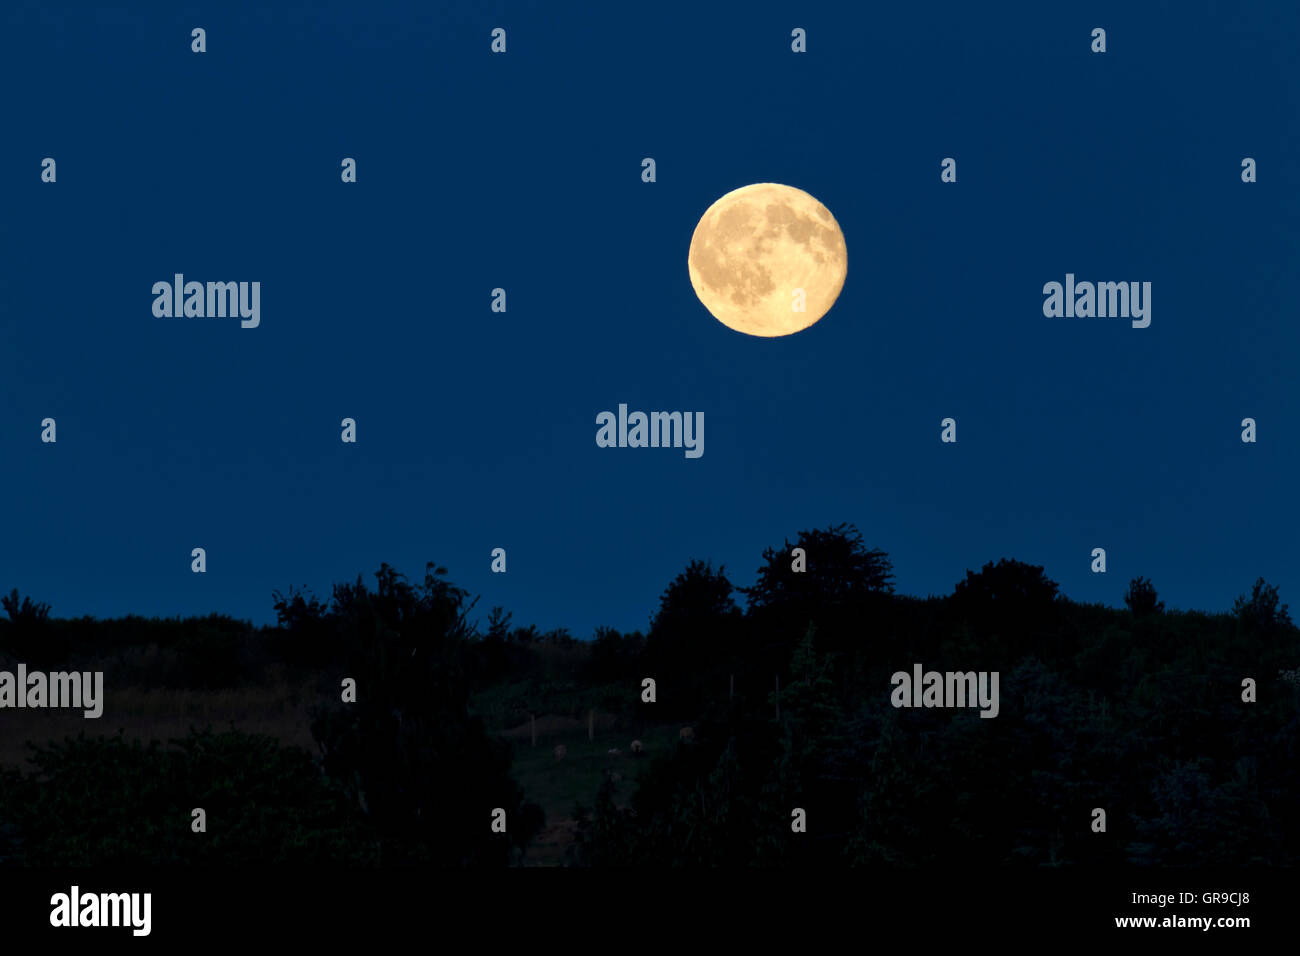 Full Moon Is Up In The Night - Stock Image